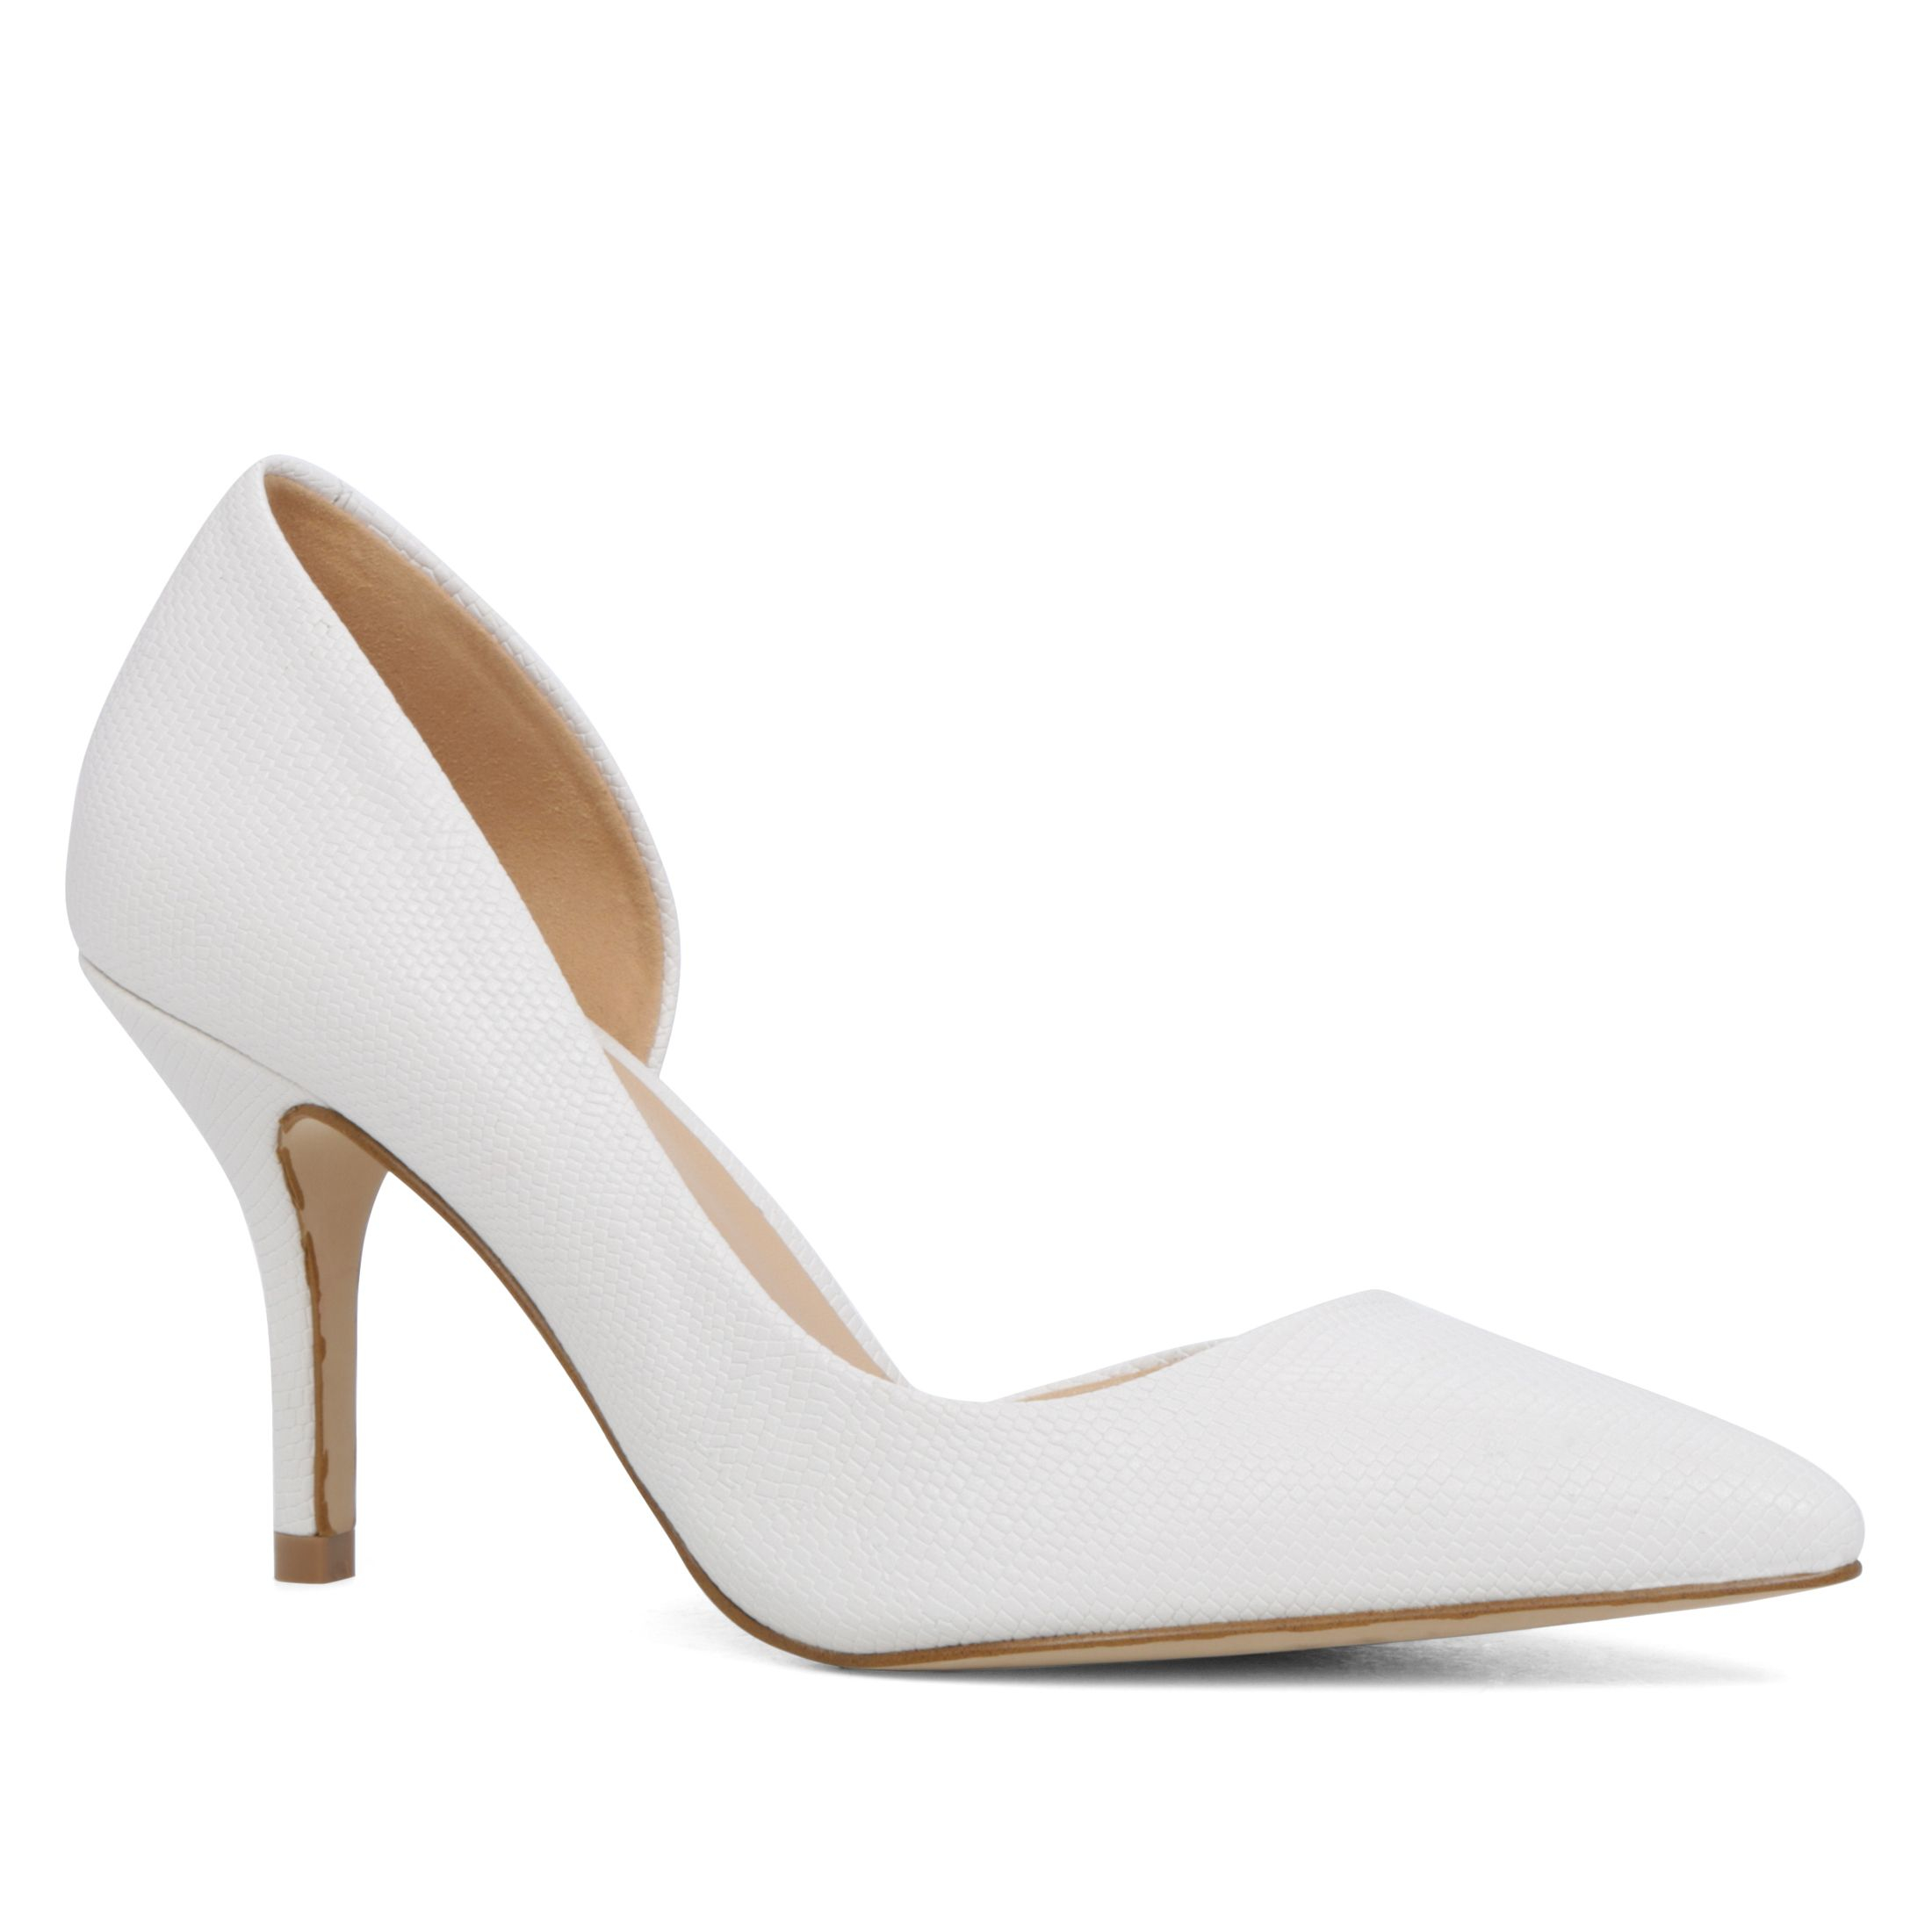 aldo aceidia u pointed toe court shoe in white lyst